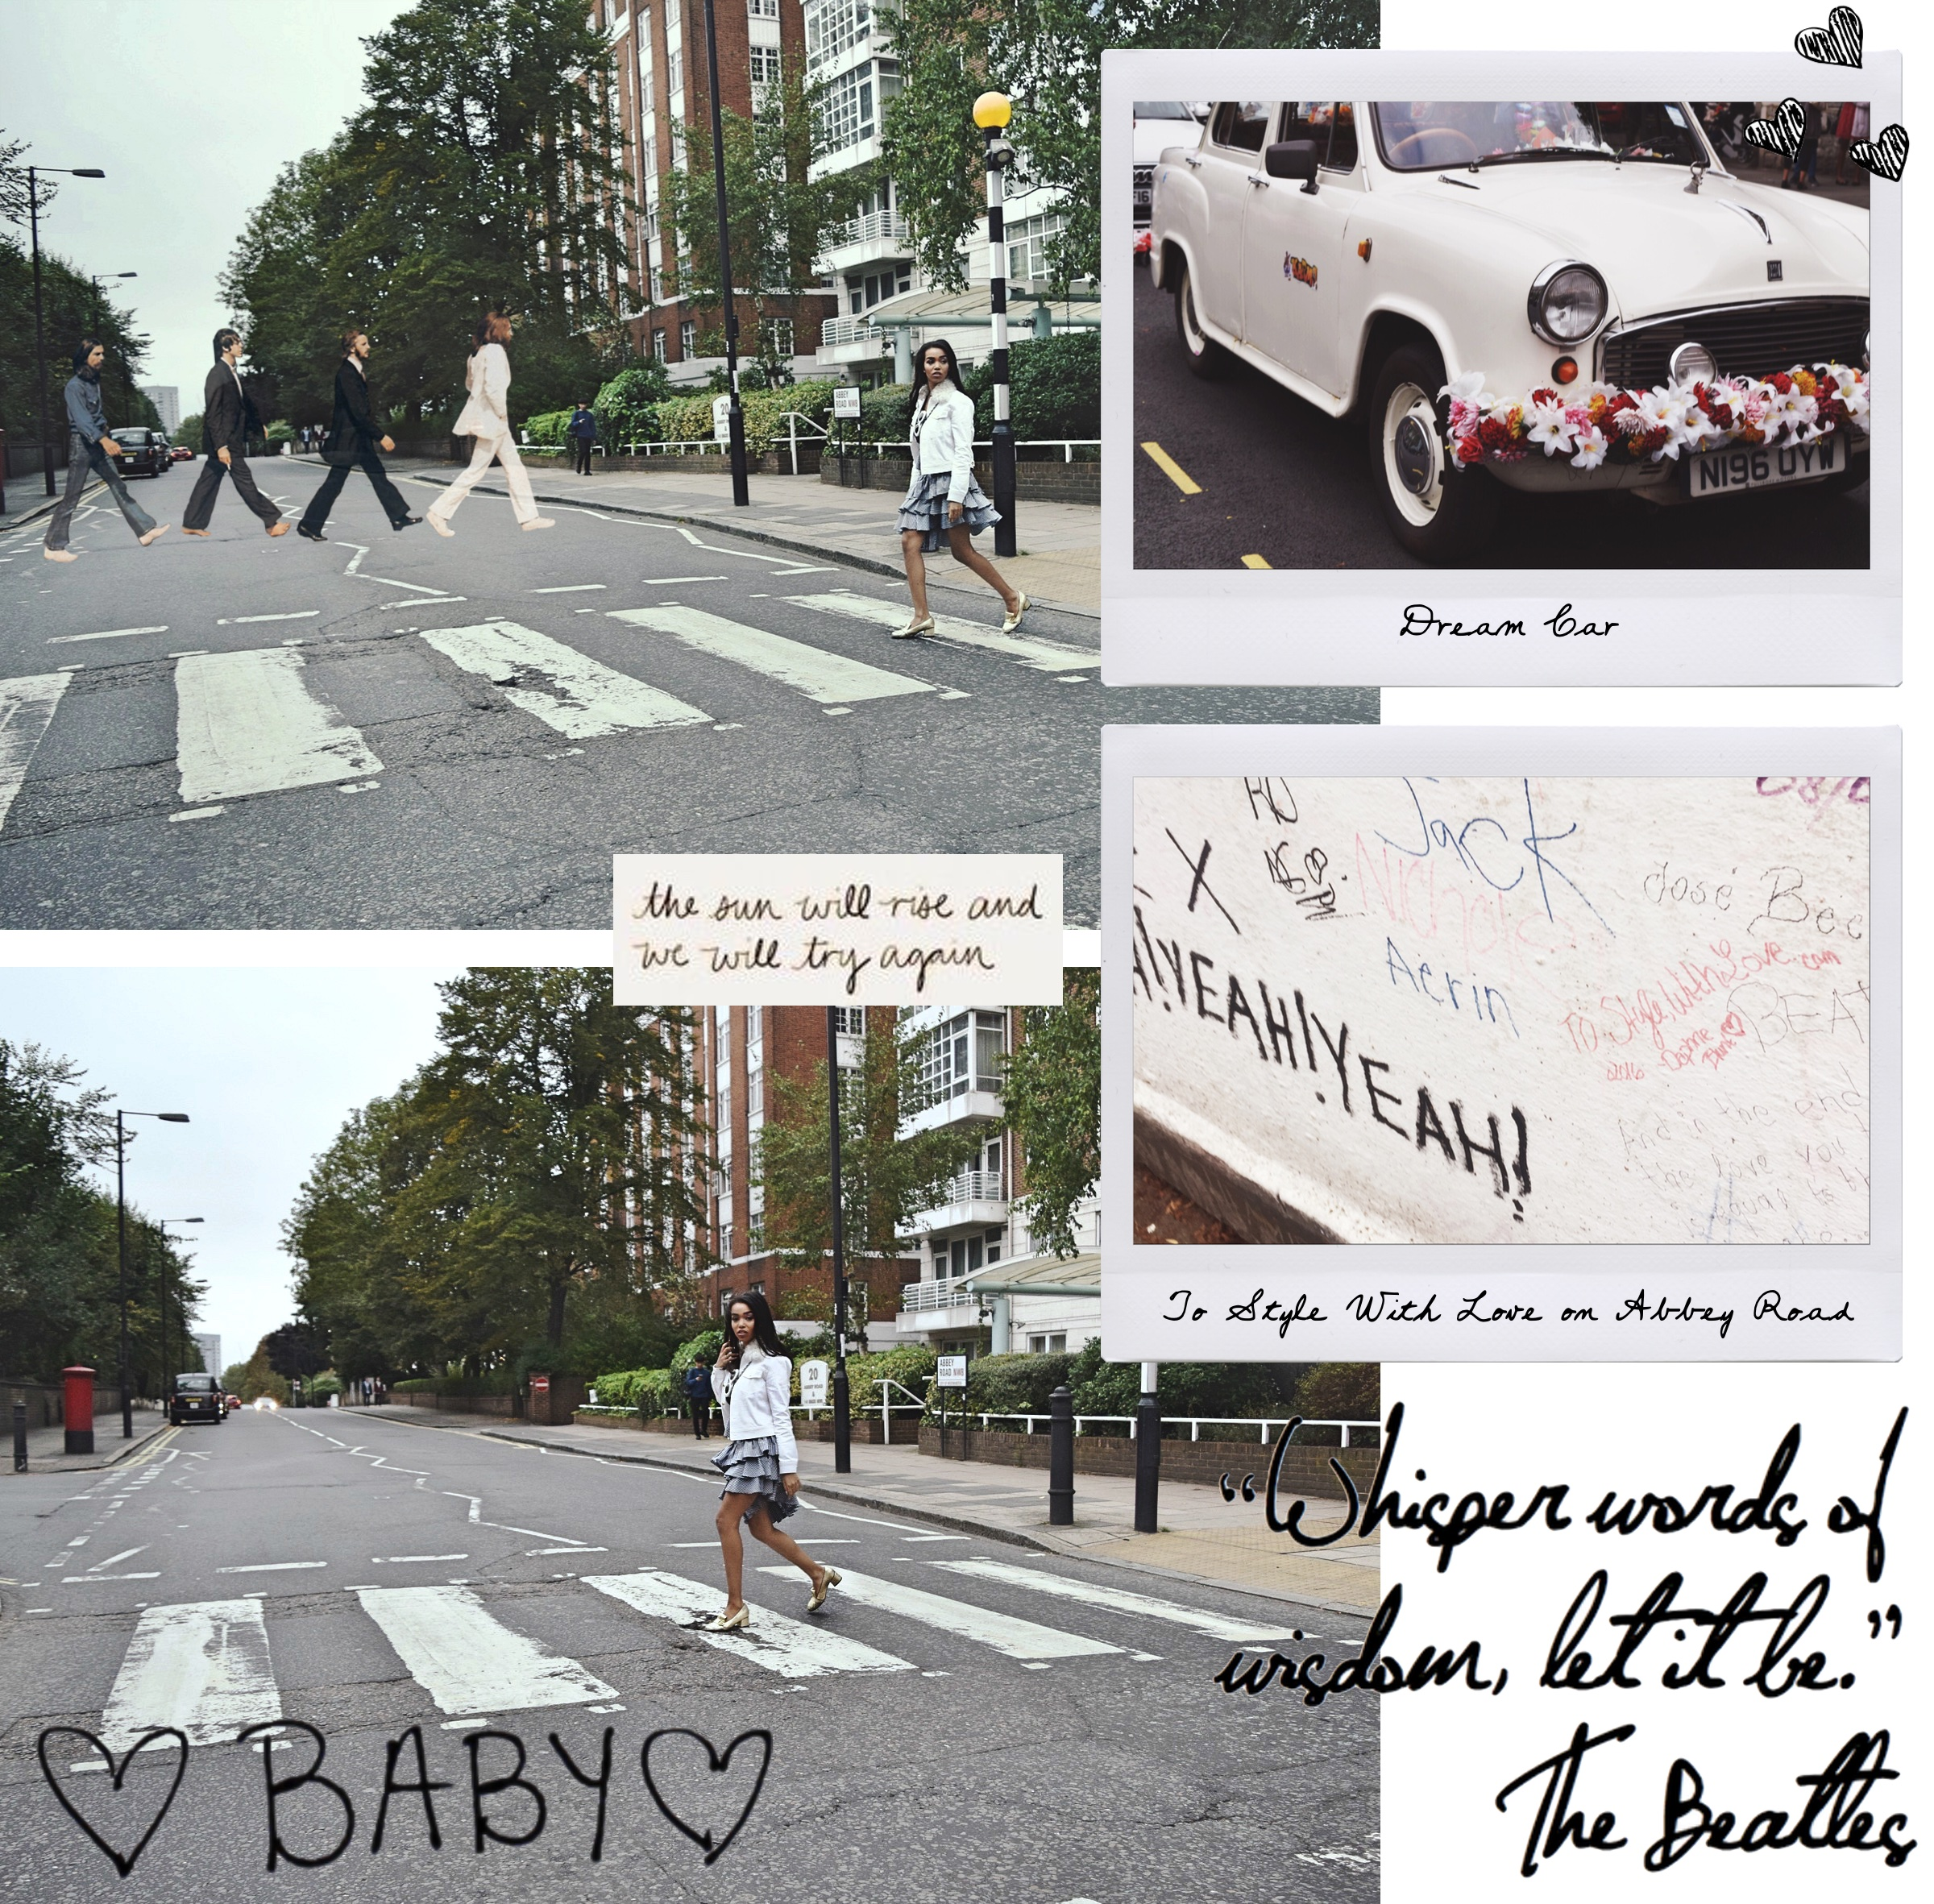 Abbey Road, London England // The Beatles, Abbey Road Studios // London Travel Diary // Los Angeles Fashion Blogger Daphne Blunt: To Style, With Love